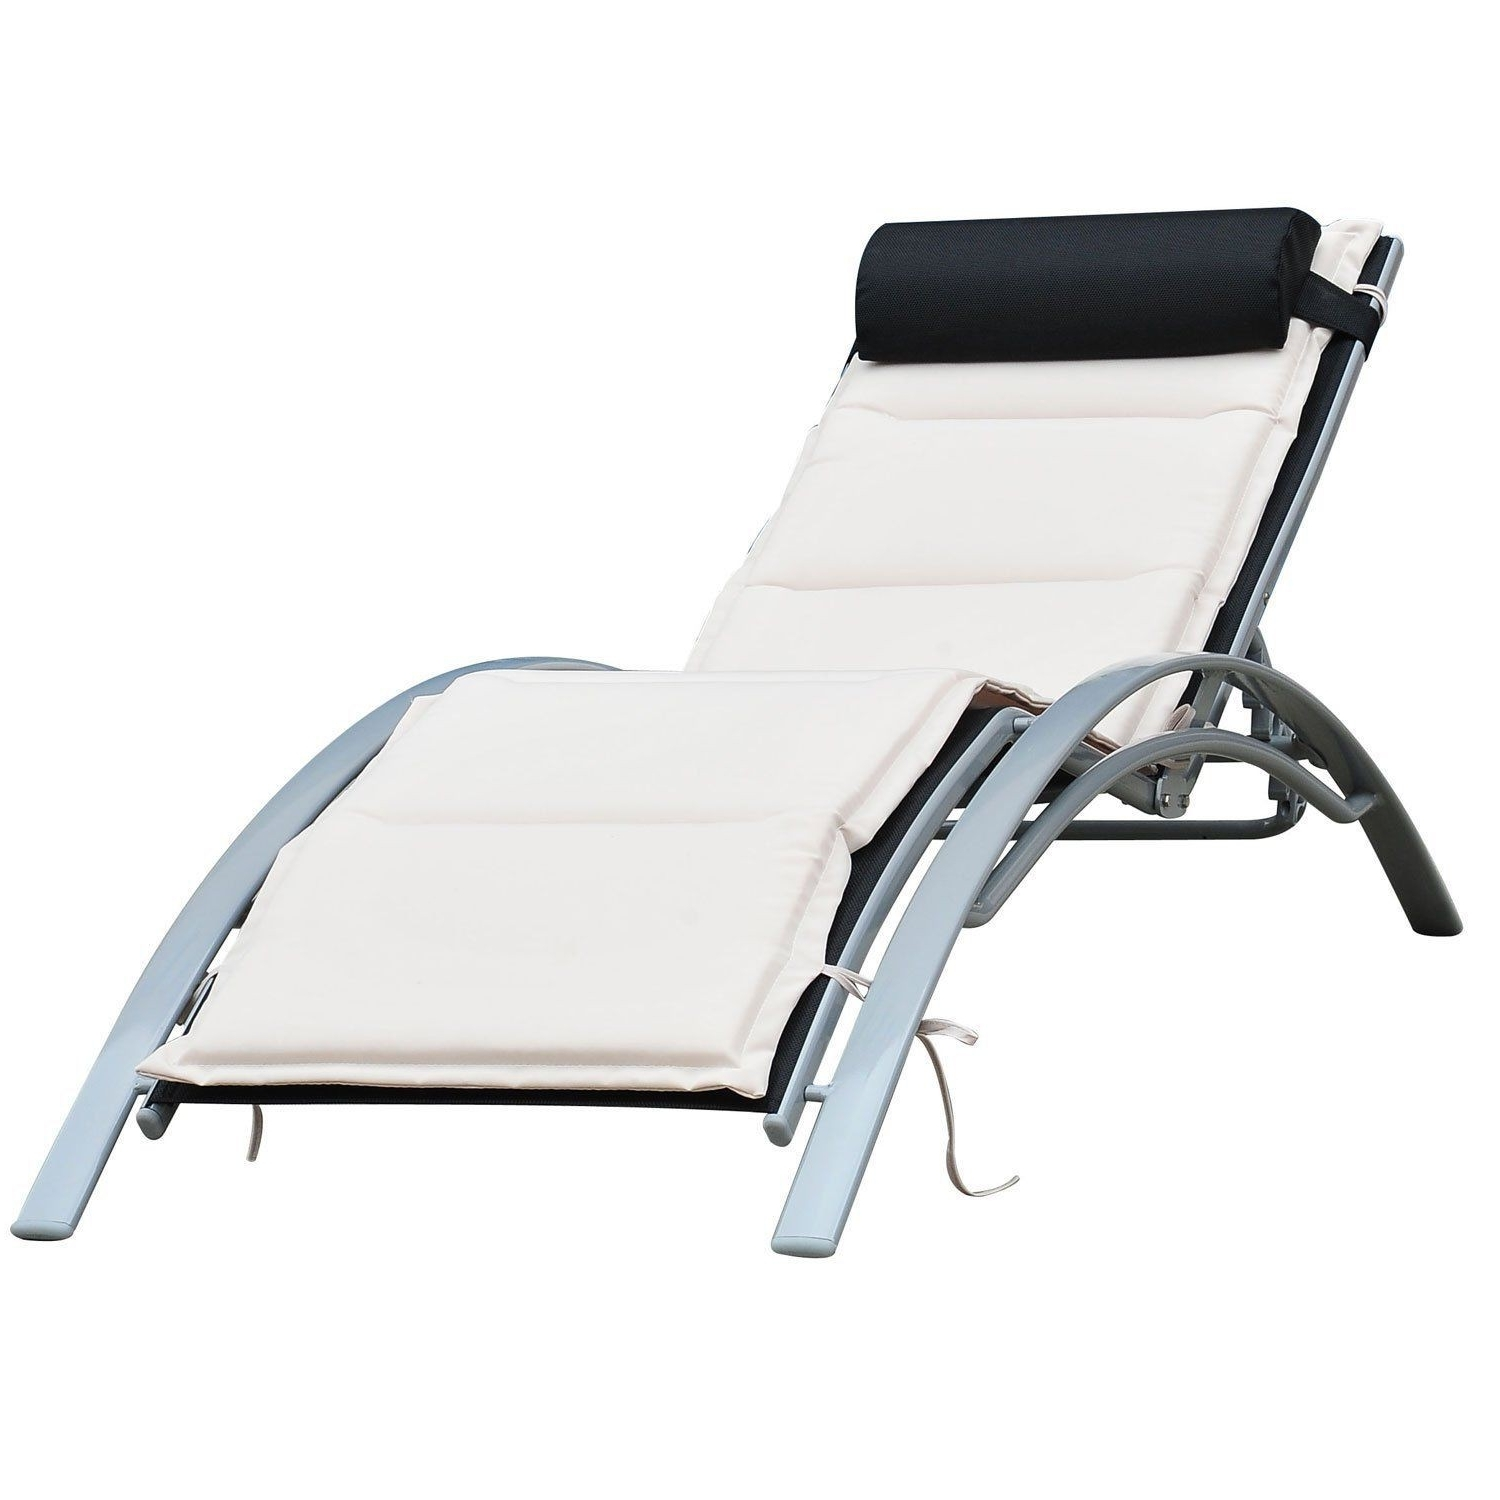 Chaise Lounge Reclining Chairs For Outdoor For Well Known Outsunny Patio Reclining Chaise Lounge Chair With Cushion – Black (View 14 of 15)